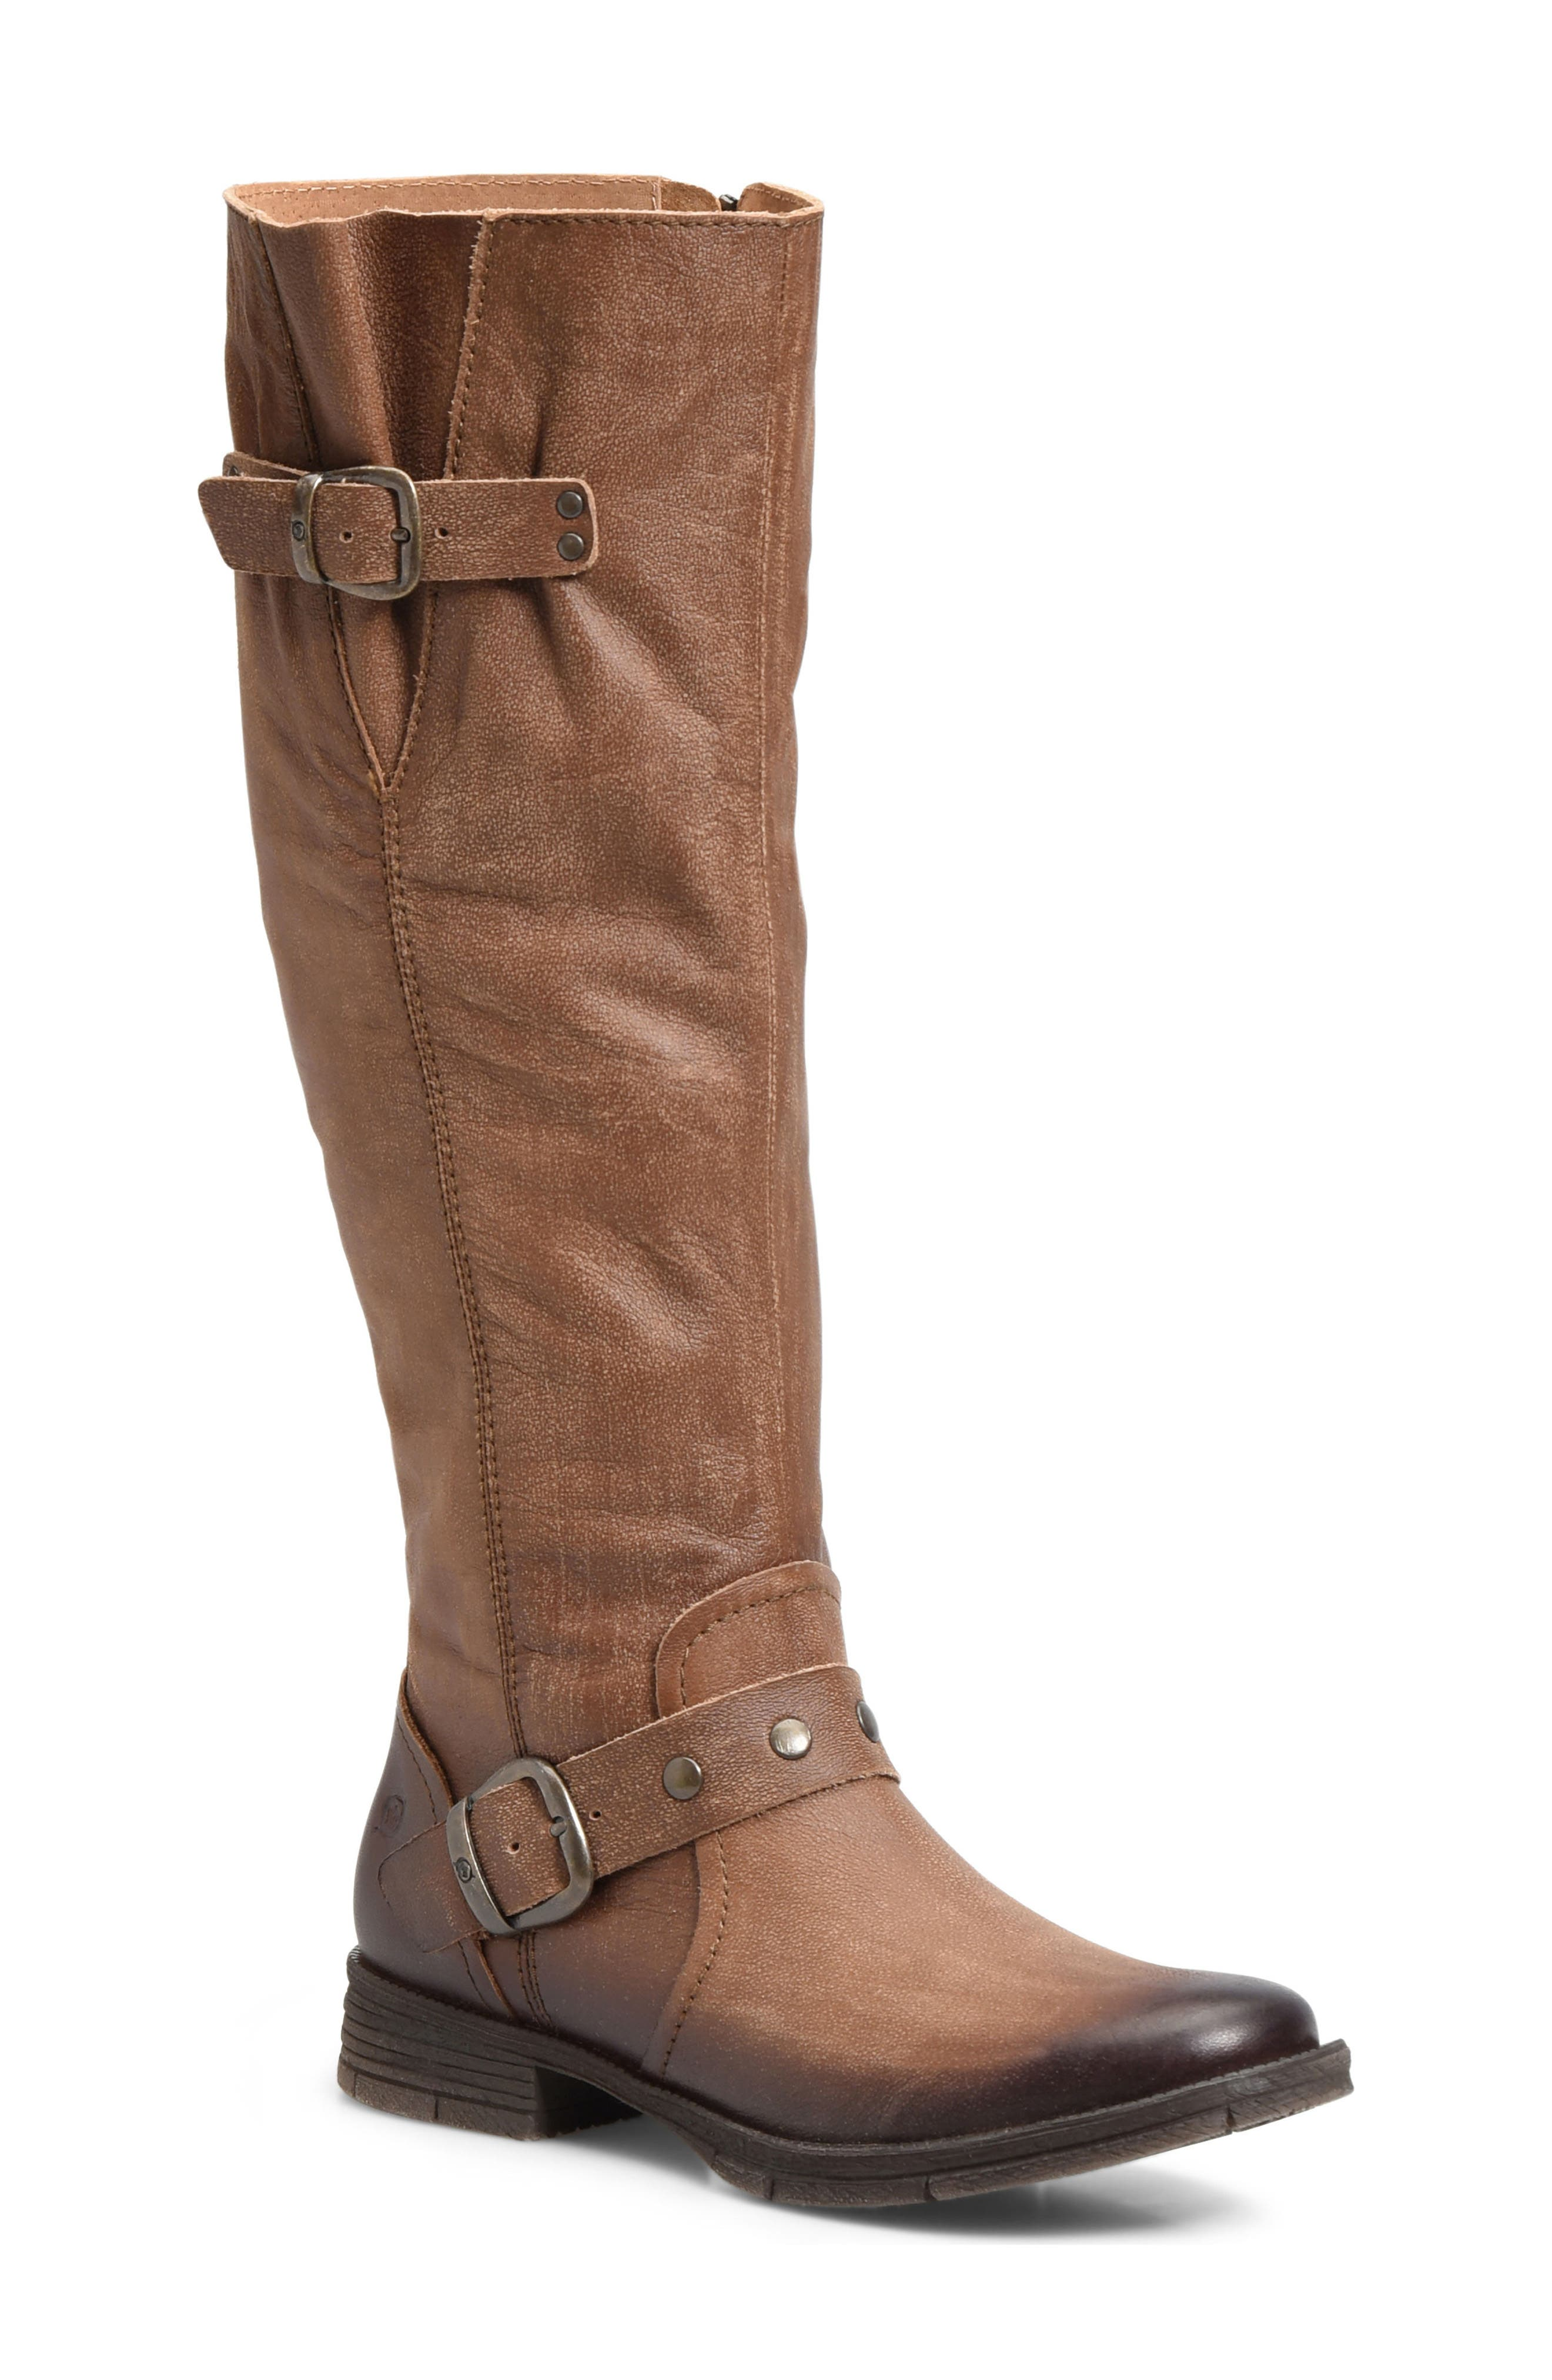 Ashland Knee High Boot,                         Main,                         color, Brown Leather